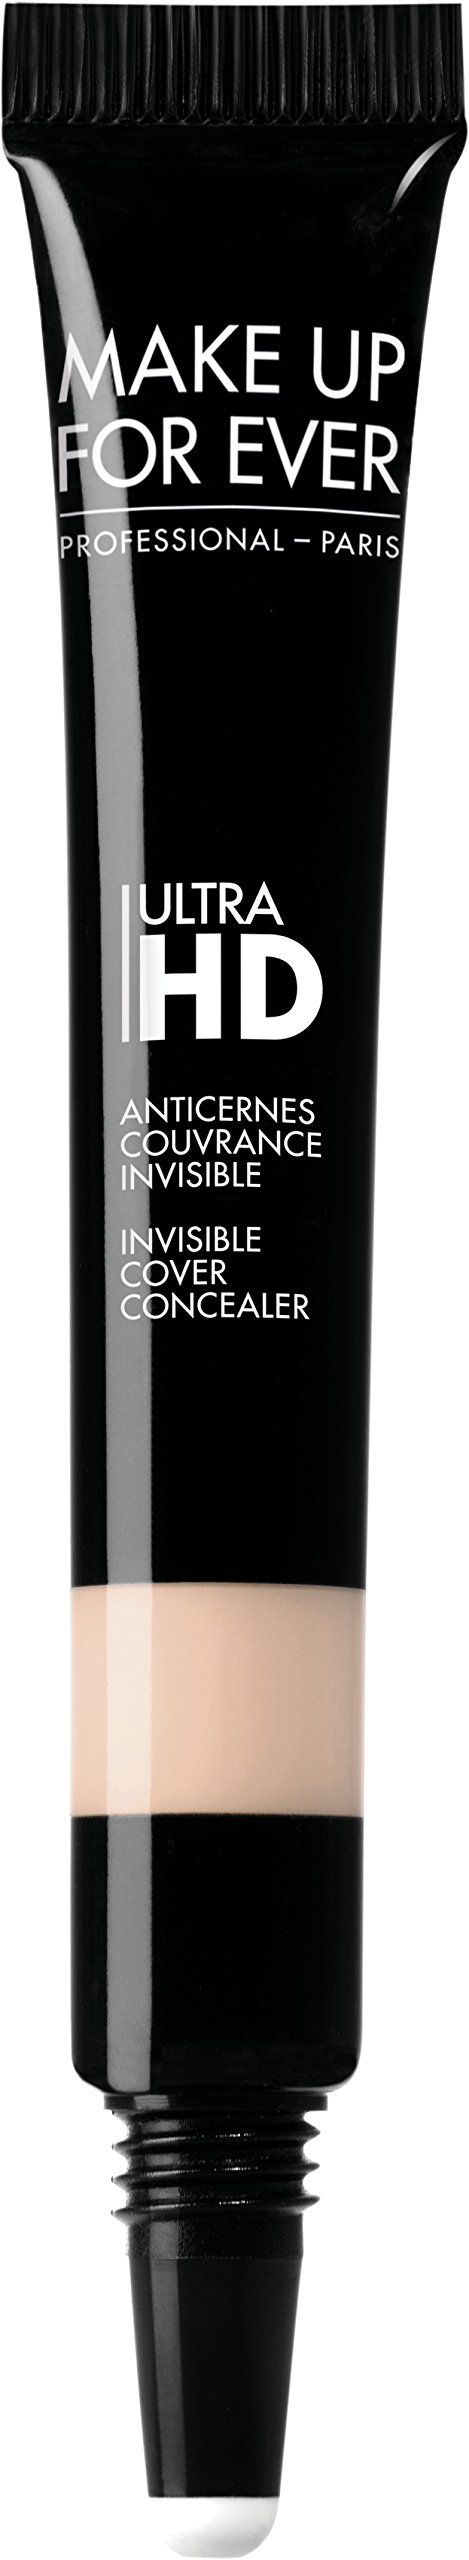 MAKE UP FOR EVER Ultra HD Invisible Cover Concealer 7ml Y21 - Pearl